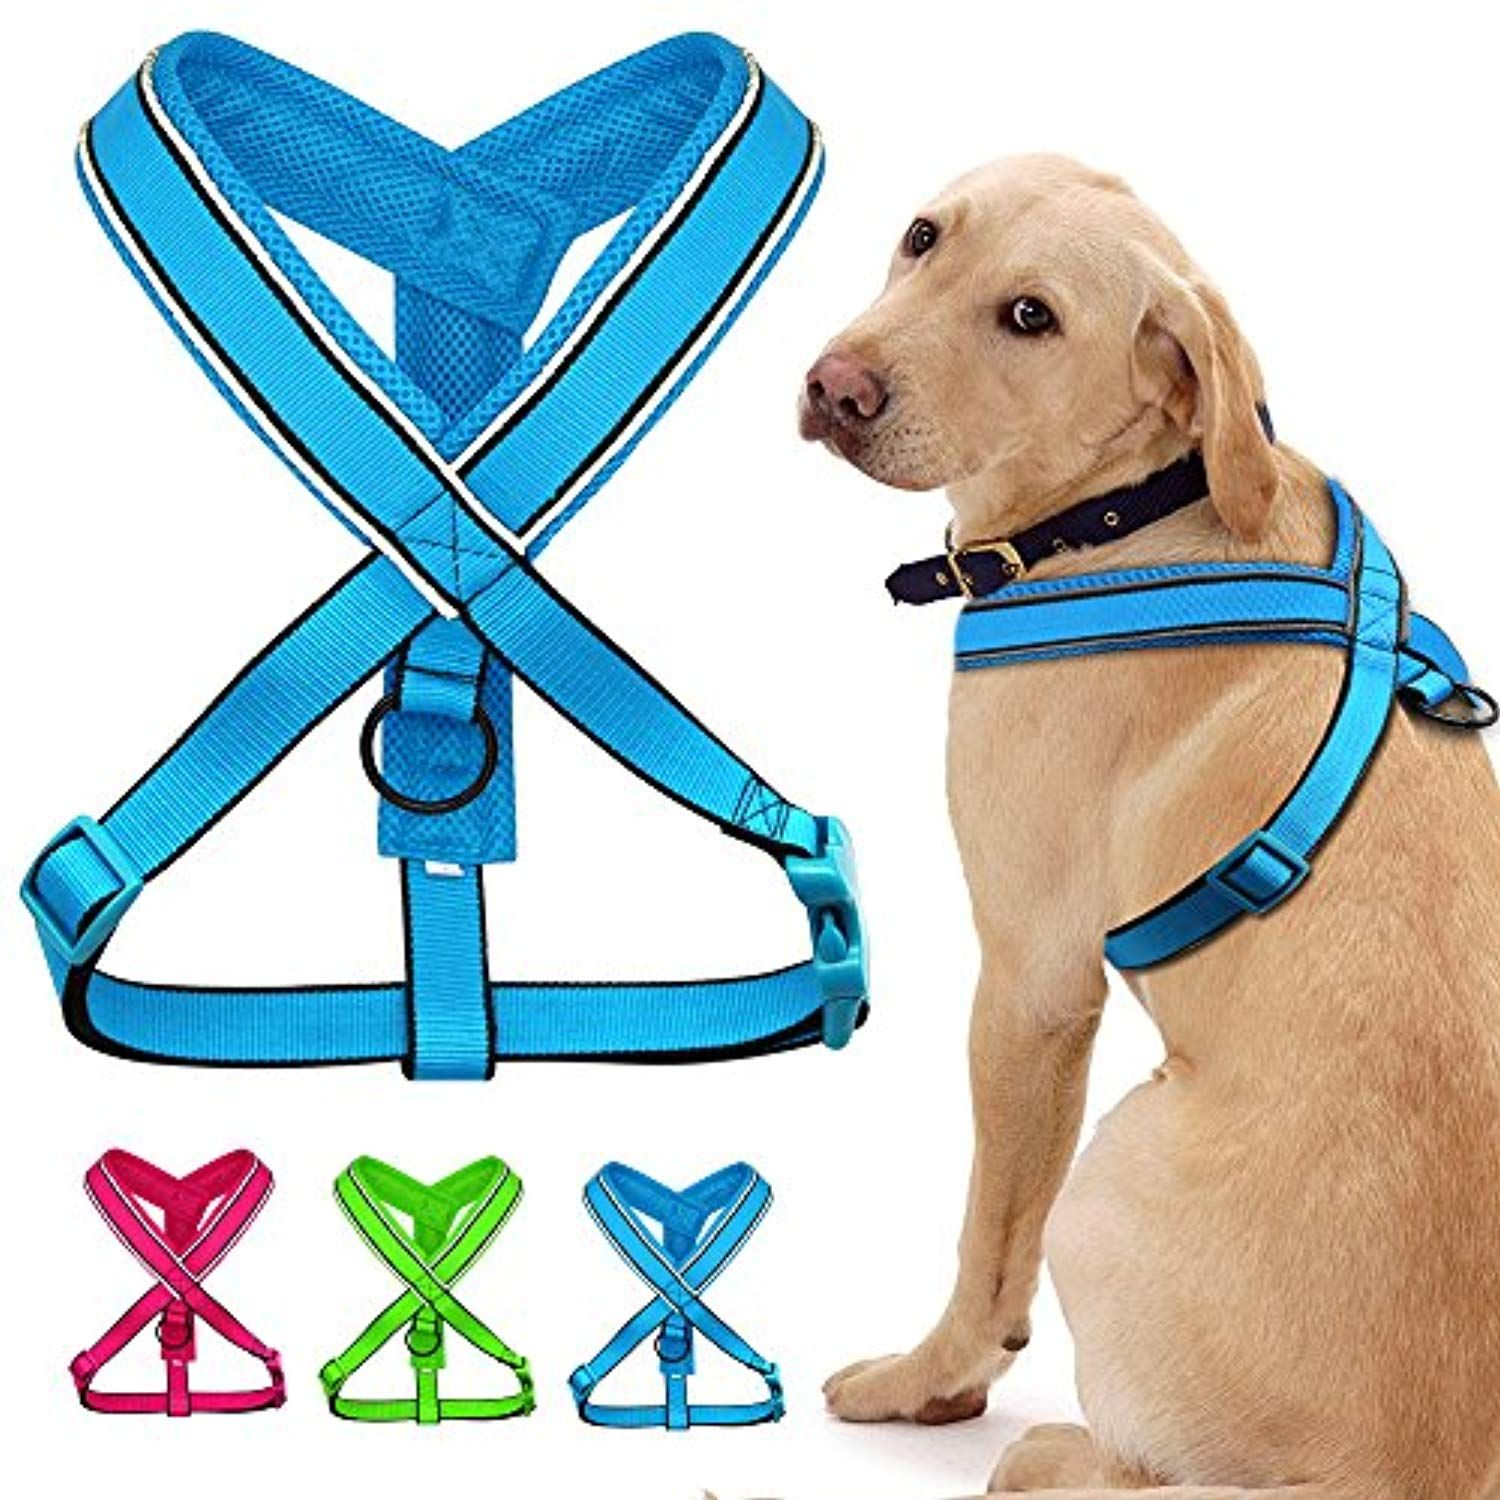 Didog Soft Padded Reflective Dog Harness For Medium And Large Dogs